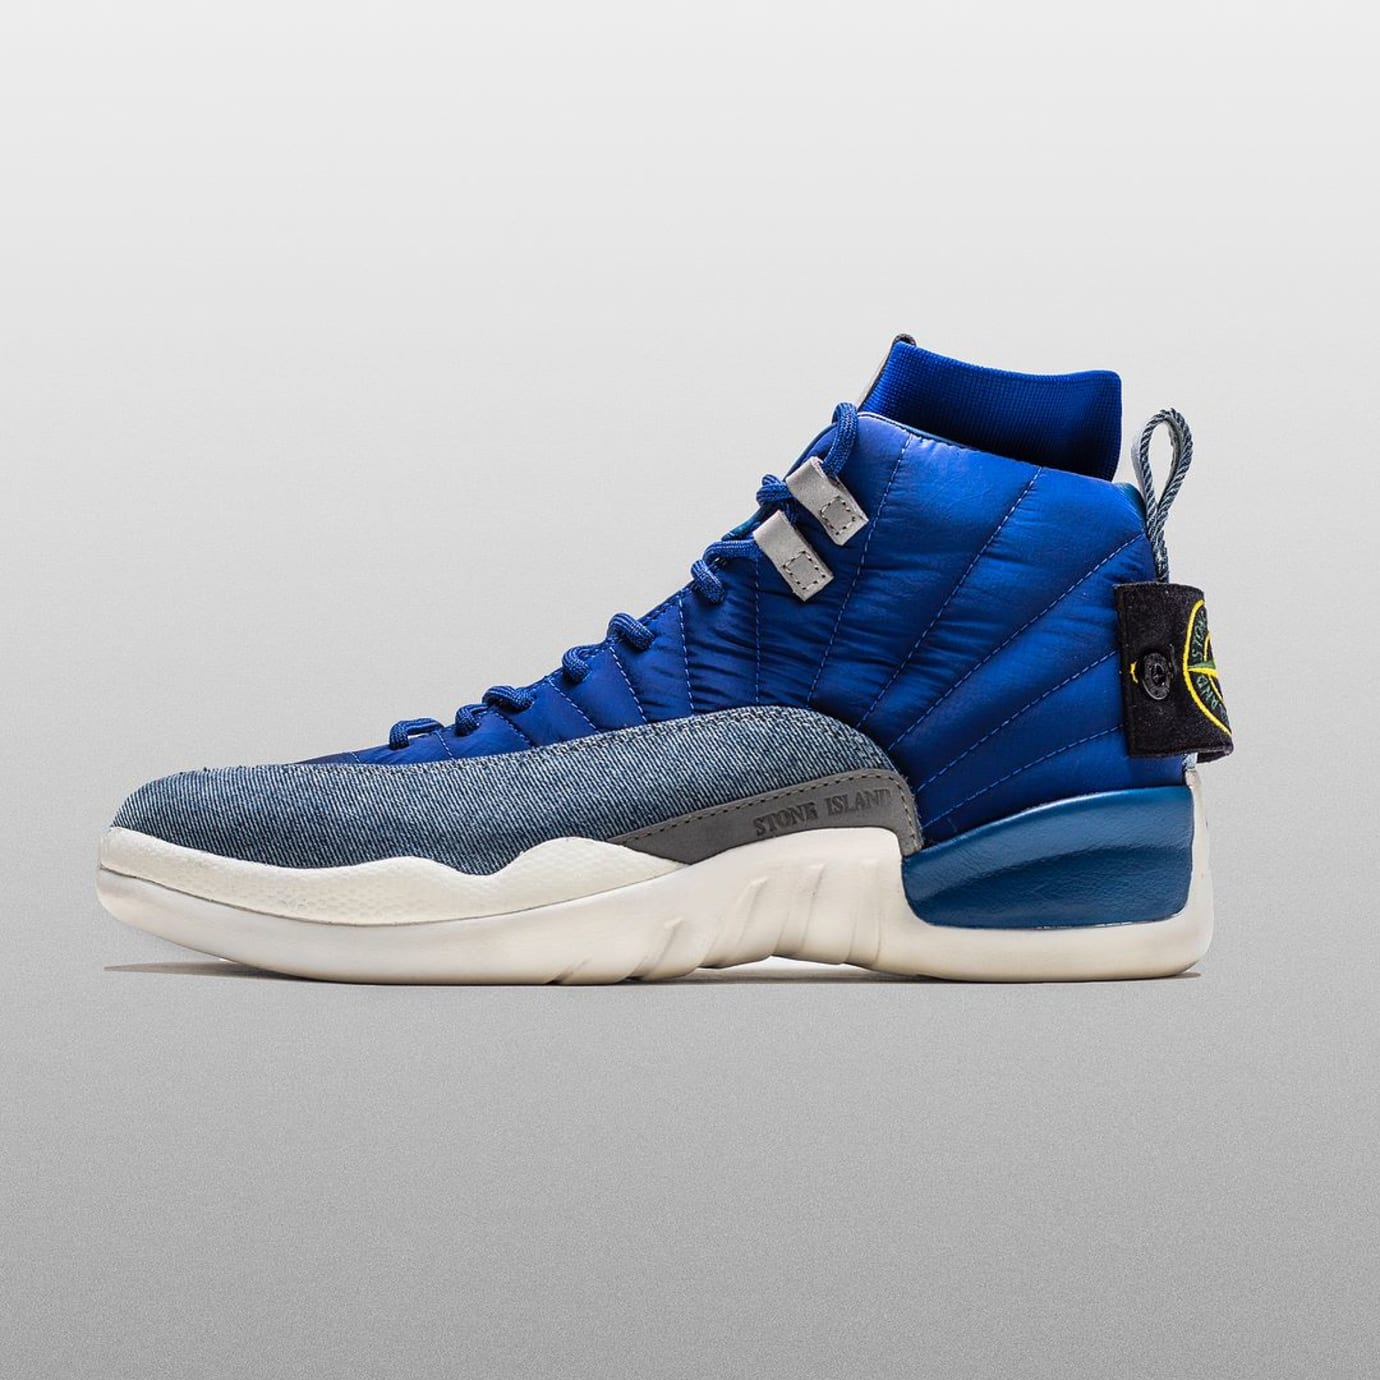 Stone Island Air Jordan 12 Drake Birthday Profile